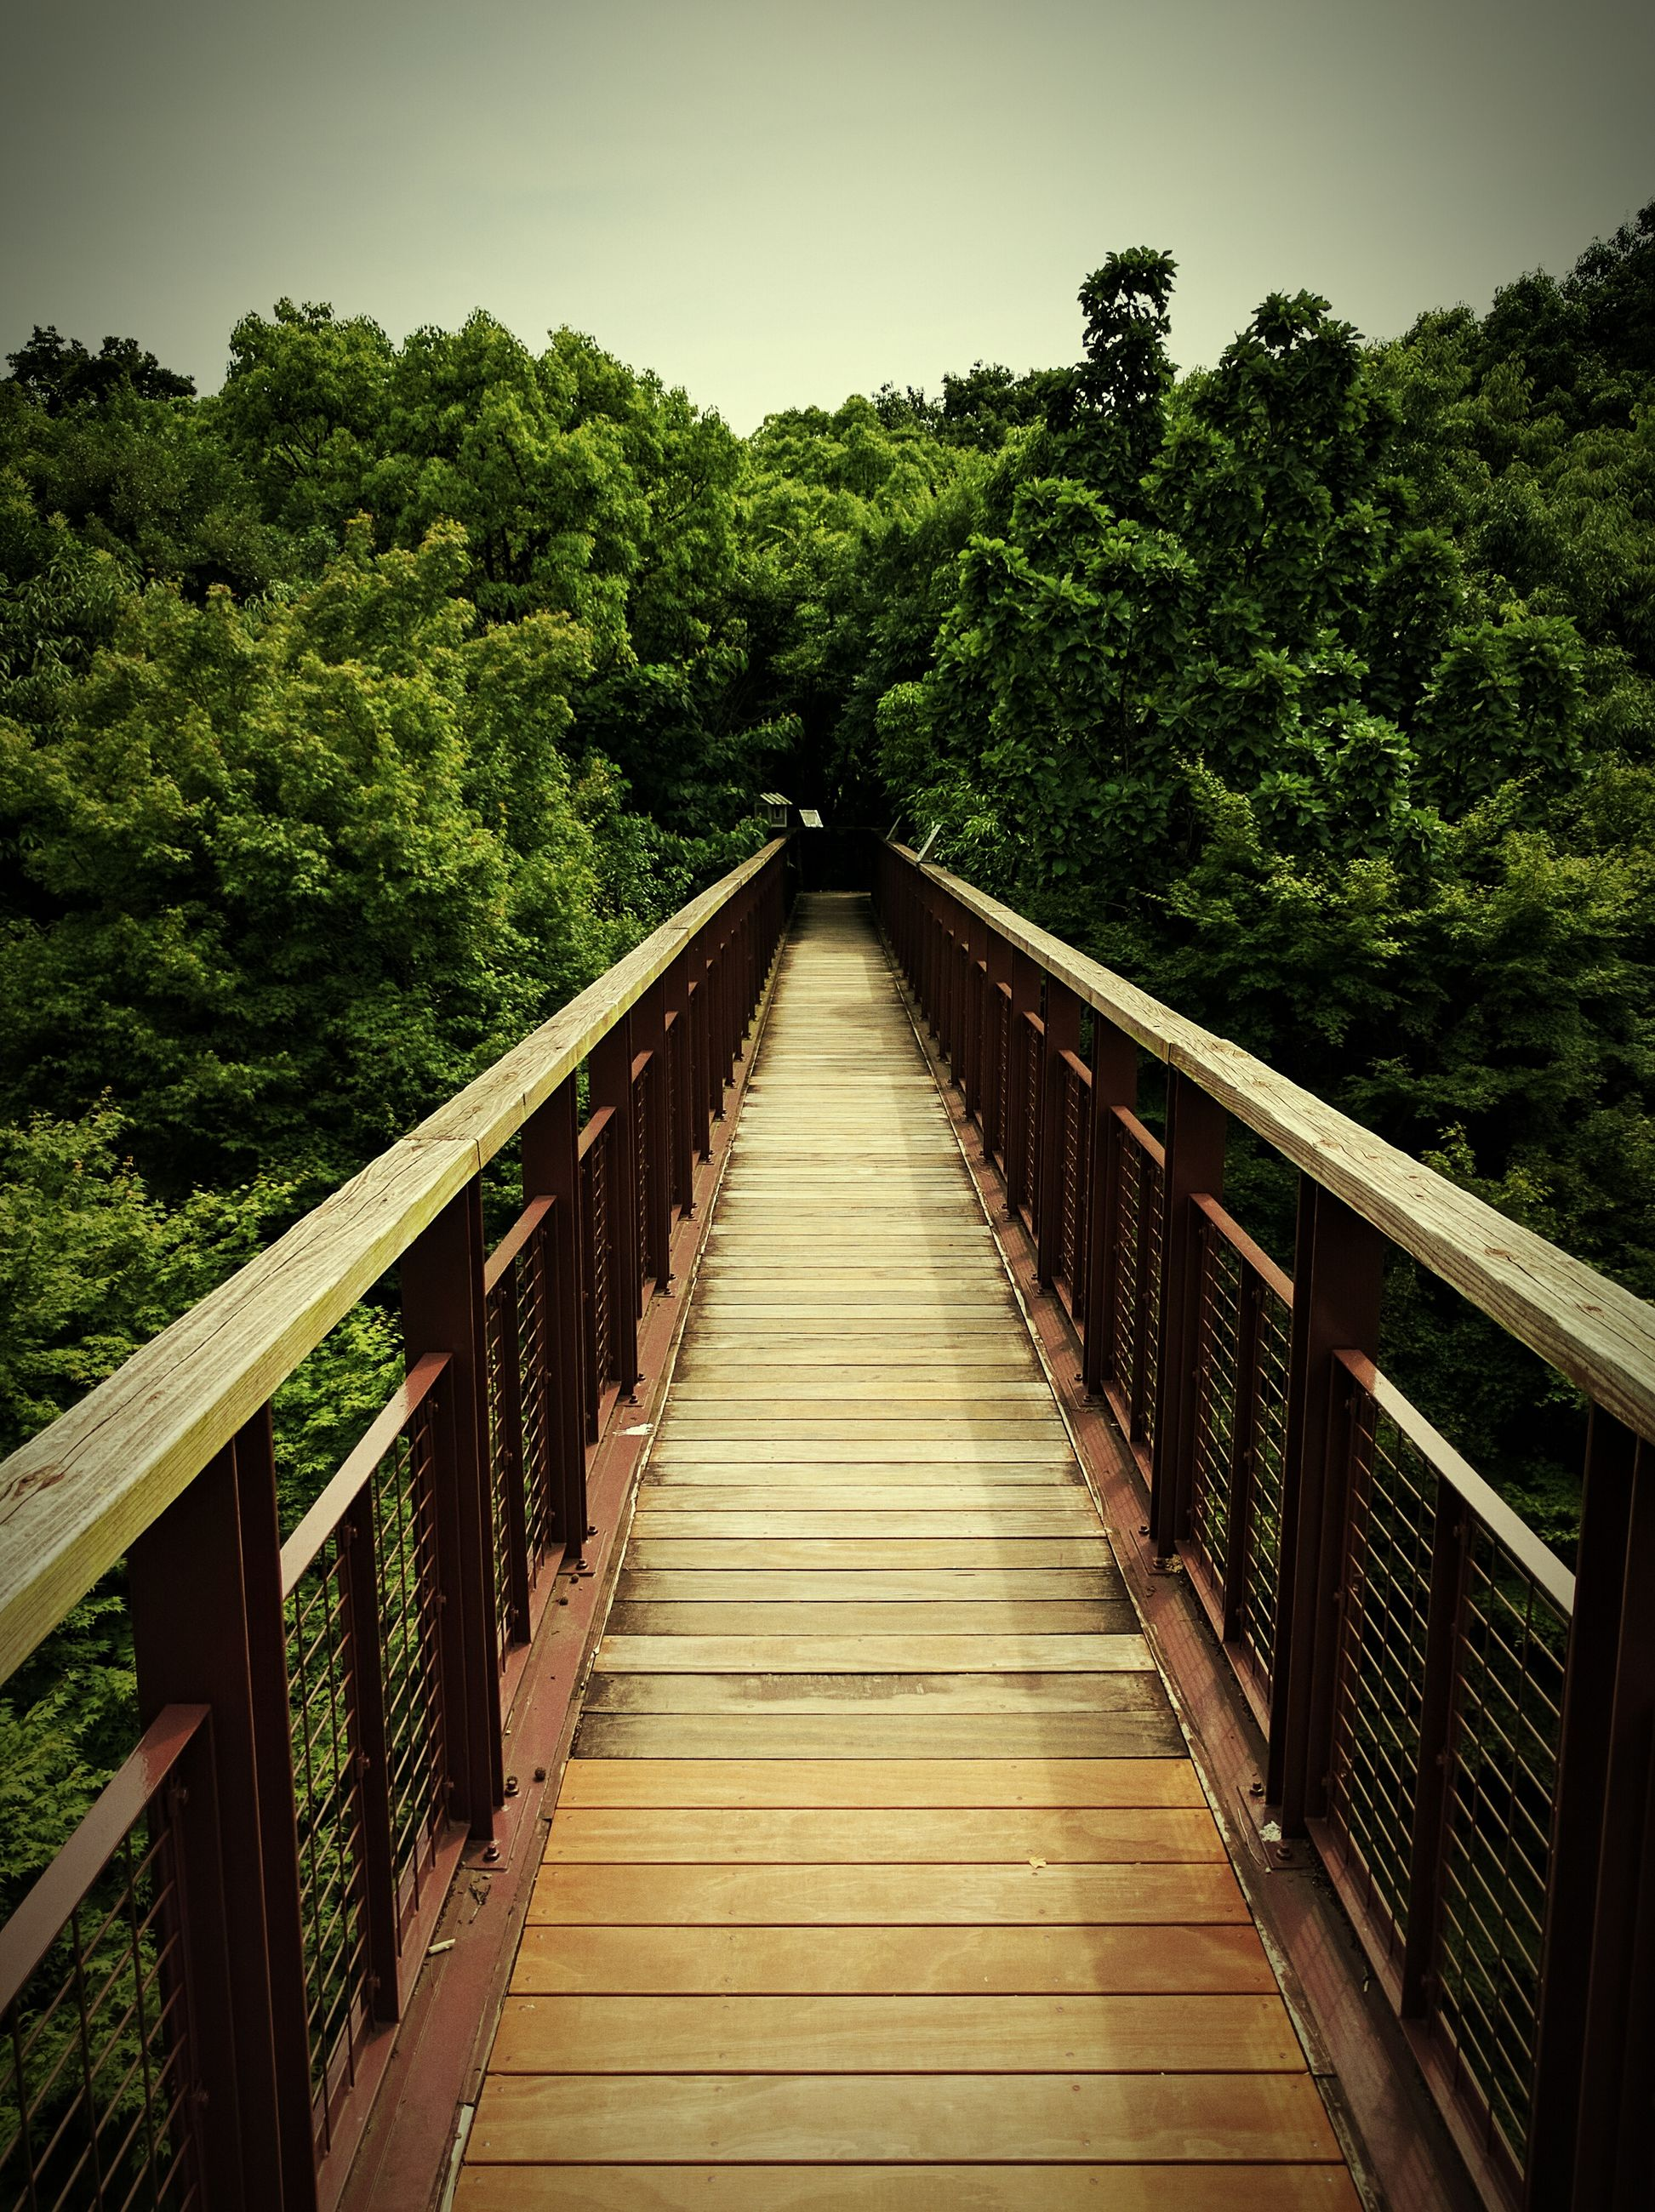 tree, the way forward, connection, footbridge, built structure, bridge - man made structure, diminishing perspective, growth, tranquility, bridge, vanishing point, nature, tranquil scene, day, long, no people, outdoors, green color, plant, sky, beauty in nature, lush foliage, narrow, walkway, scenics, non-urban scene, green, landscape